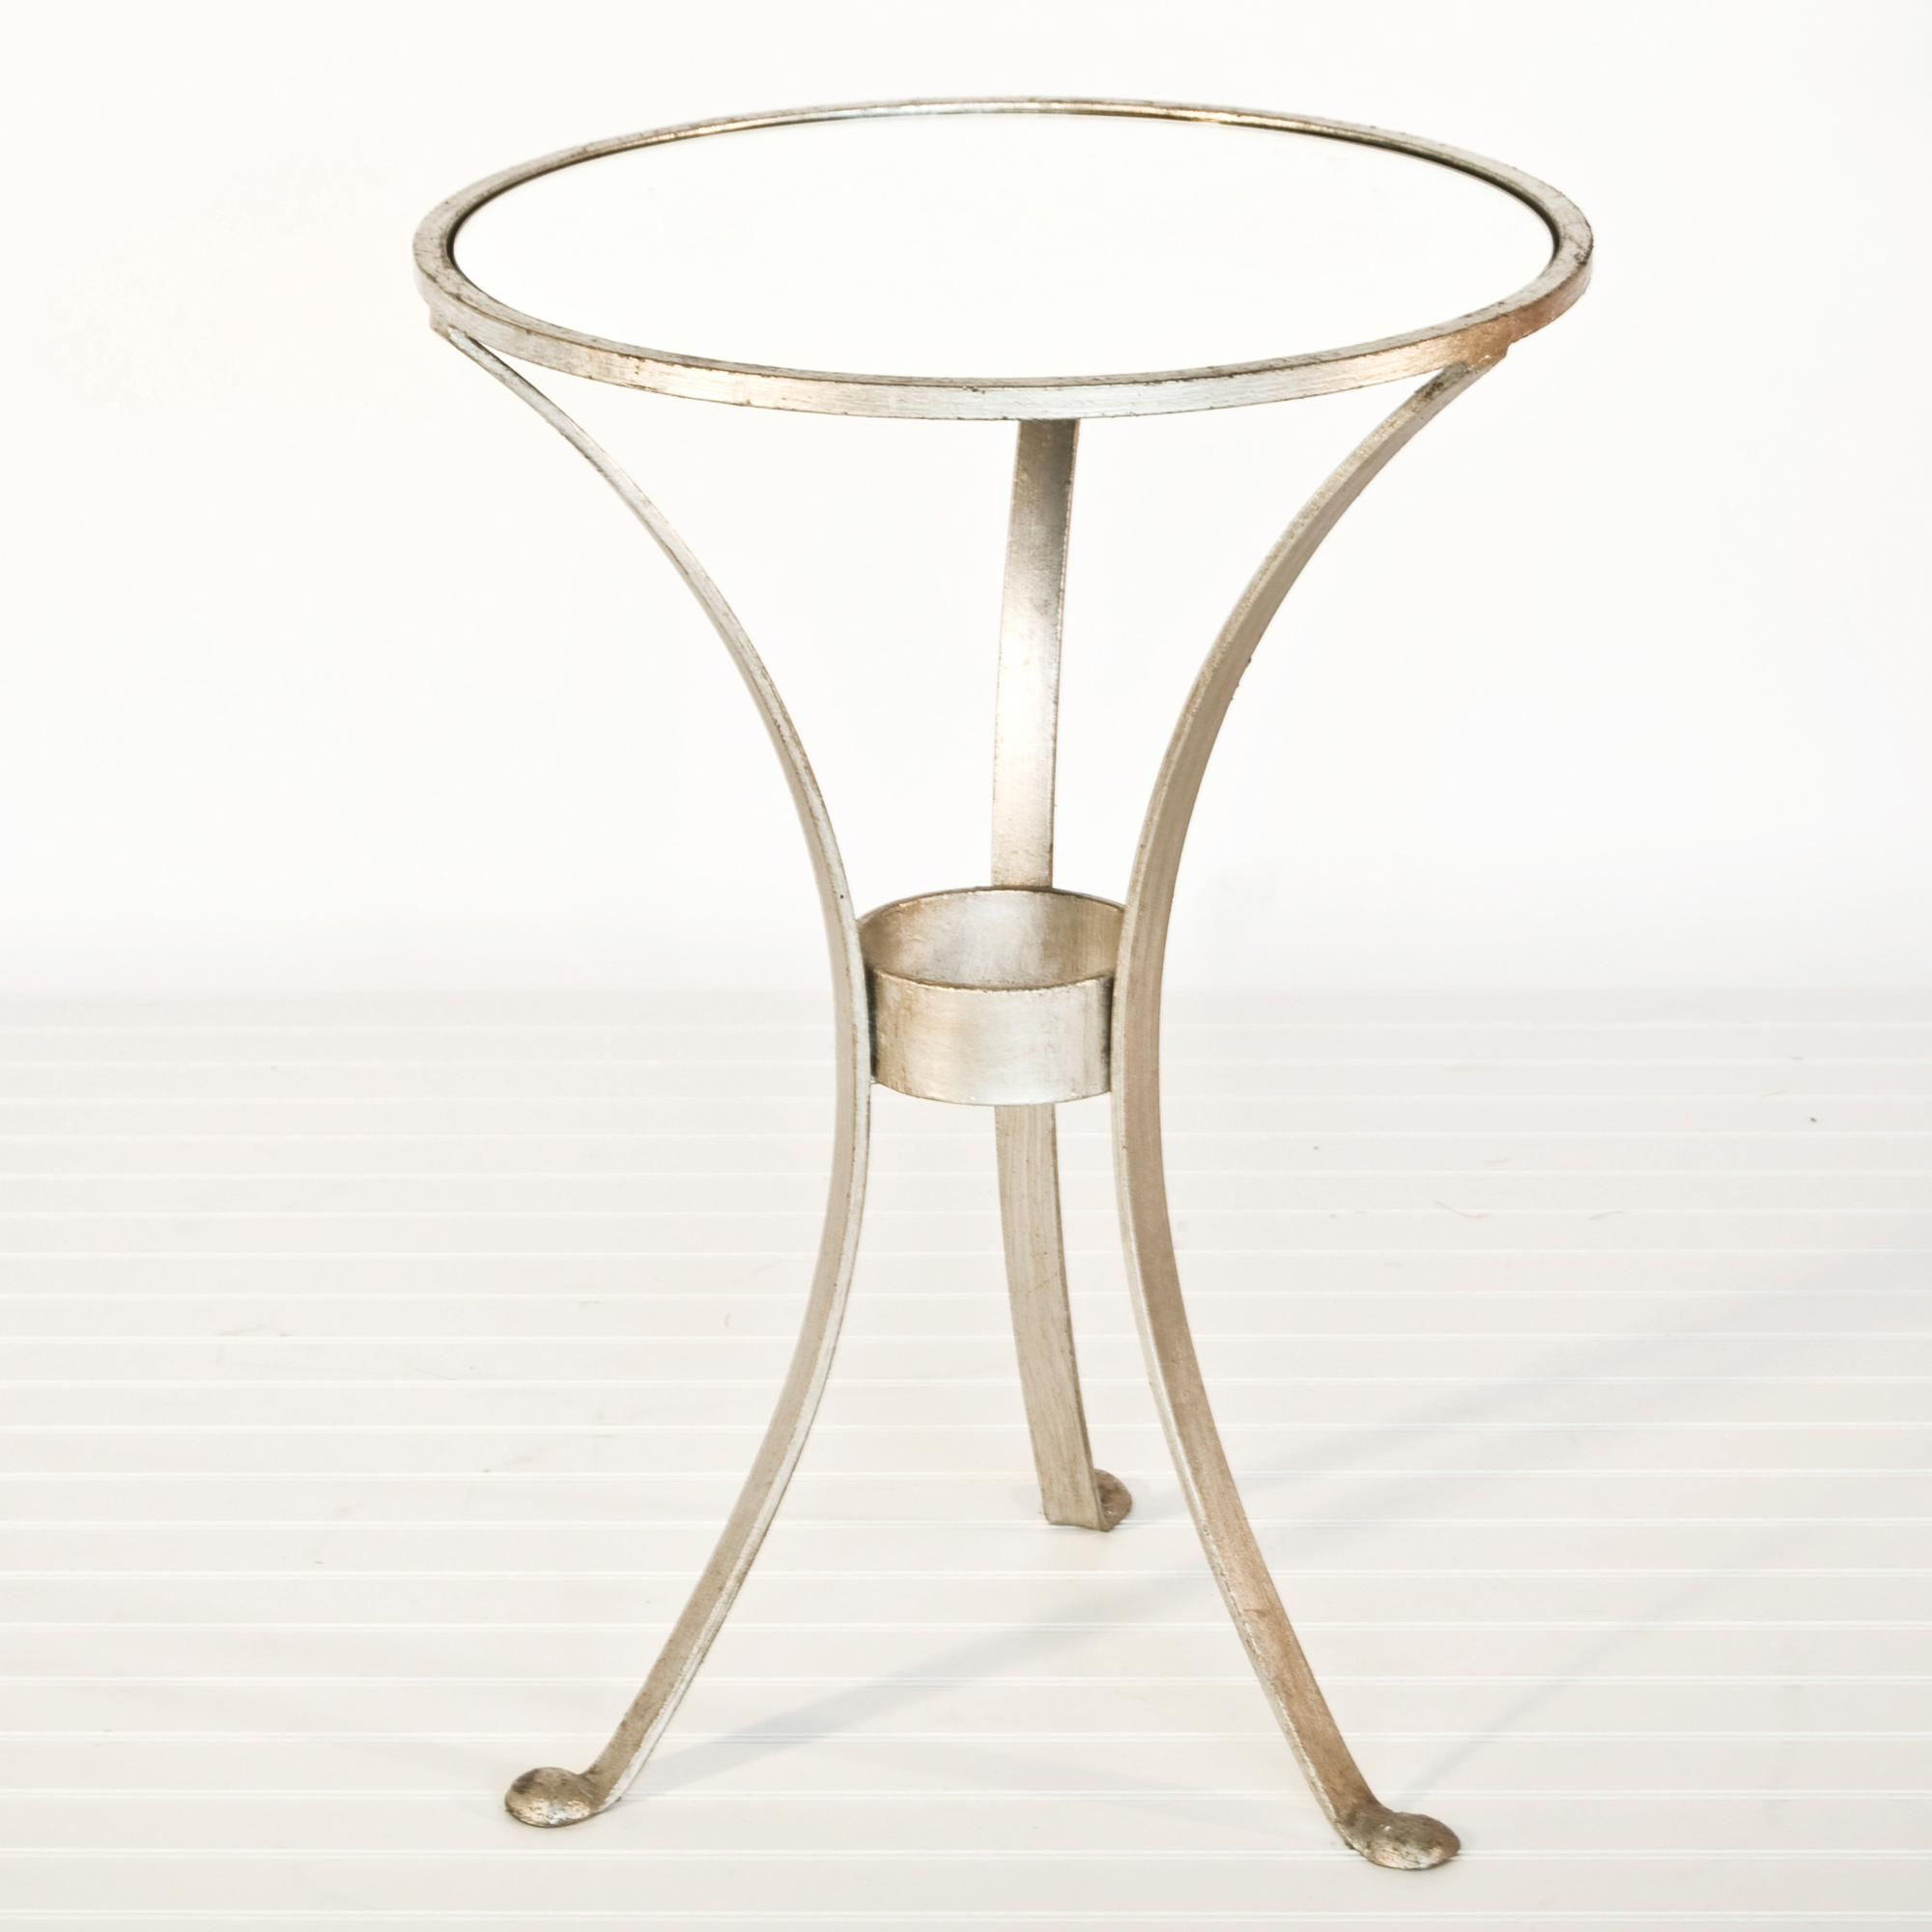 Explore Round Side Table, Round Tables, And More!